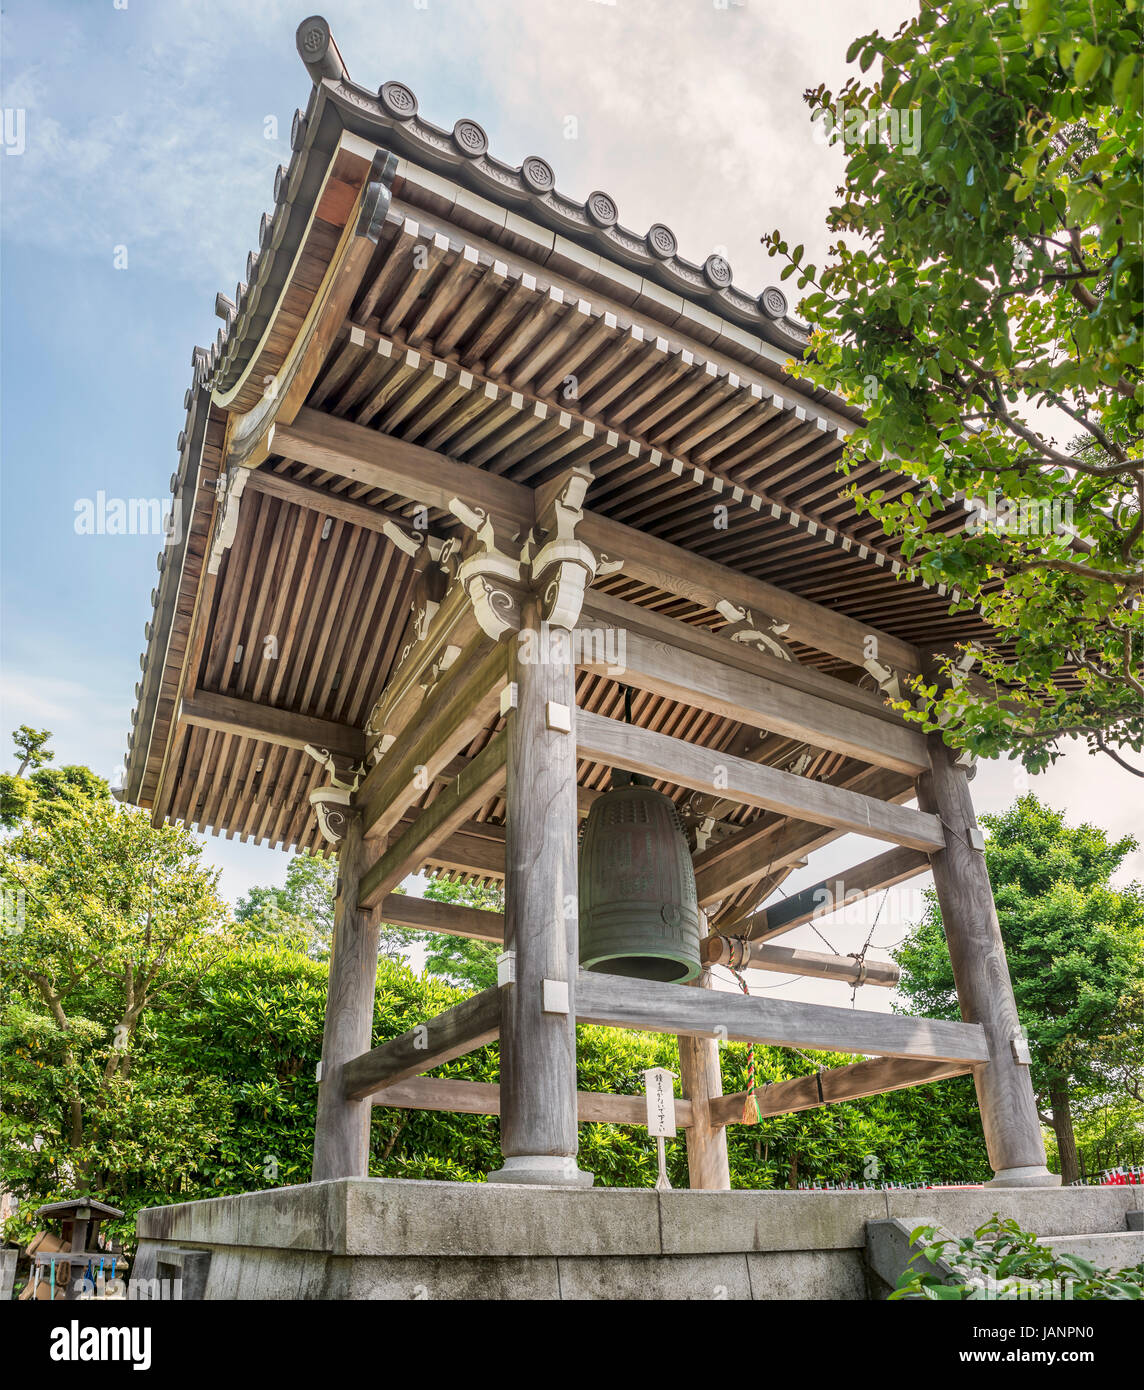 Shoro Belfry bronze bell at the Hase-dera temple, commonly called the Hase-kannon, one of the Buddhist temples in - Stock Image